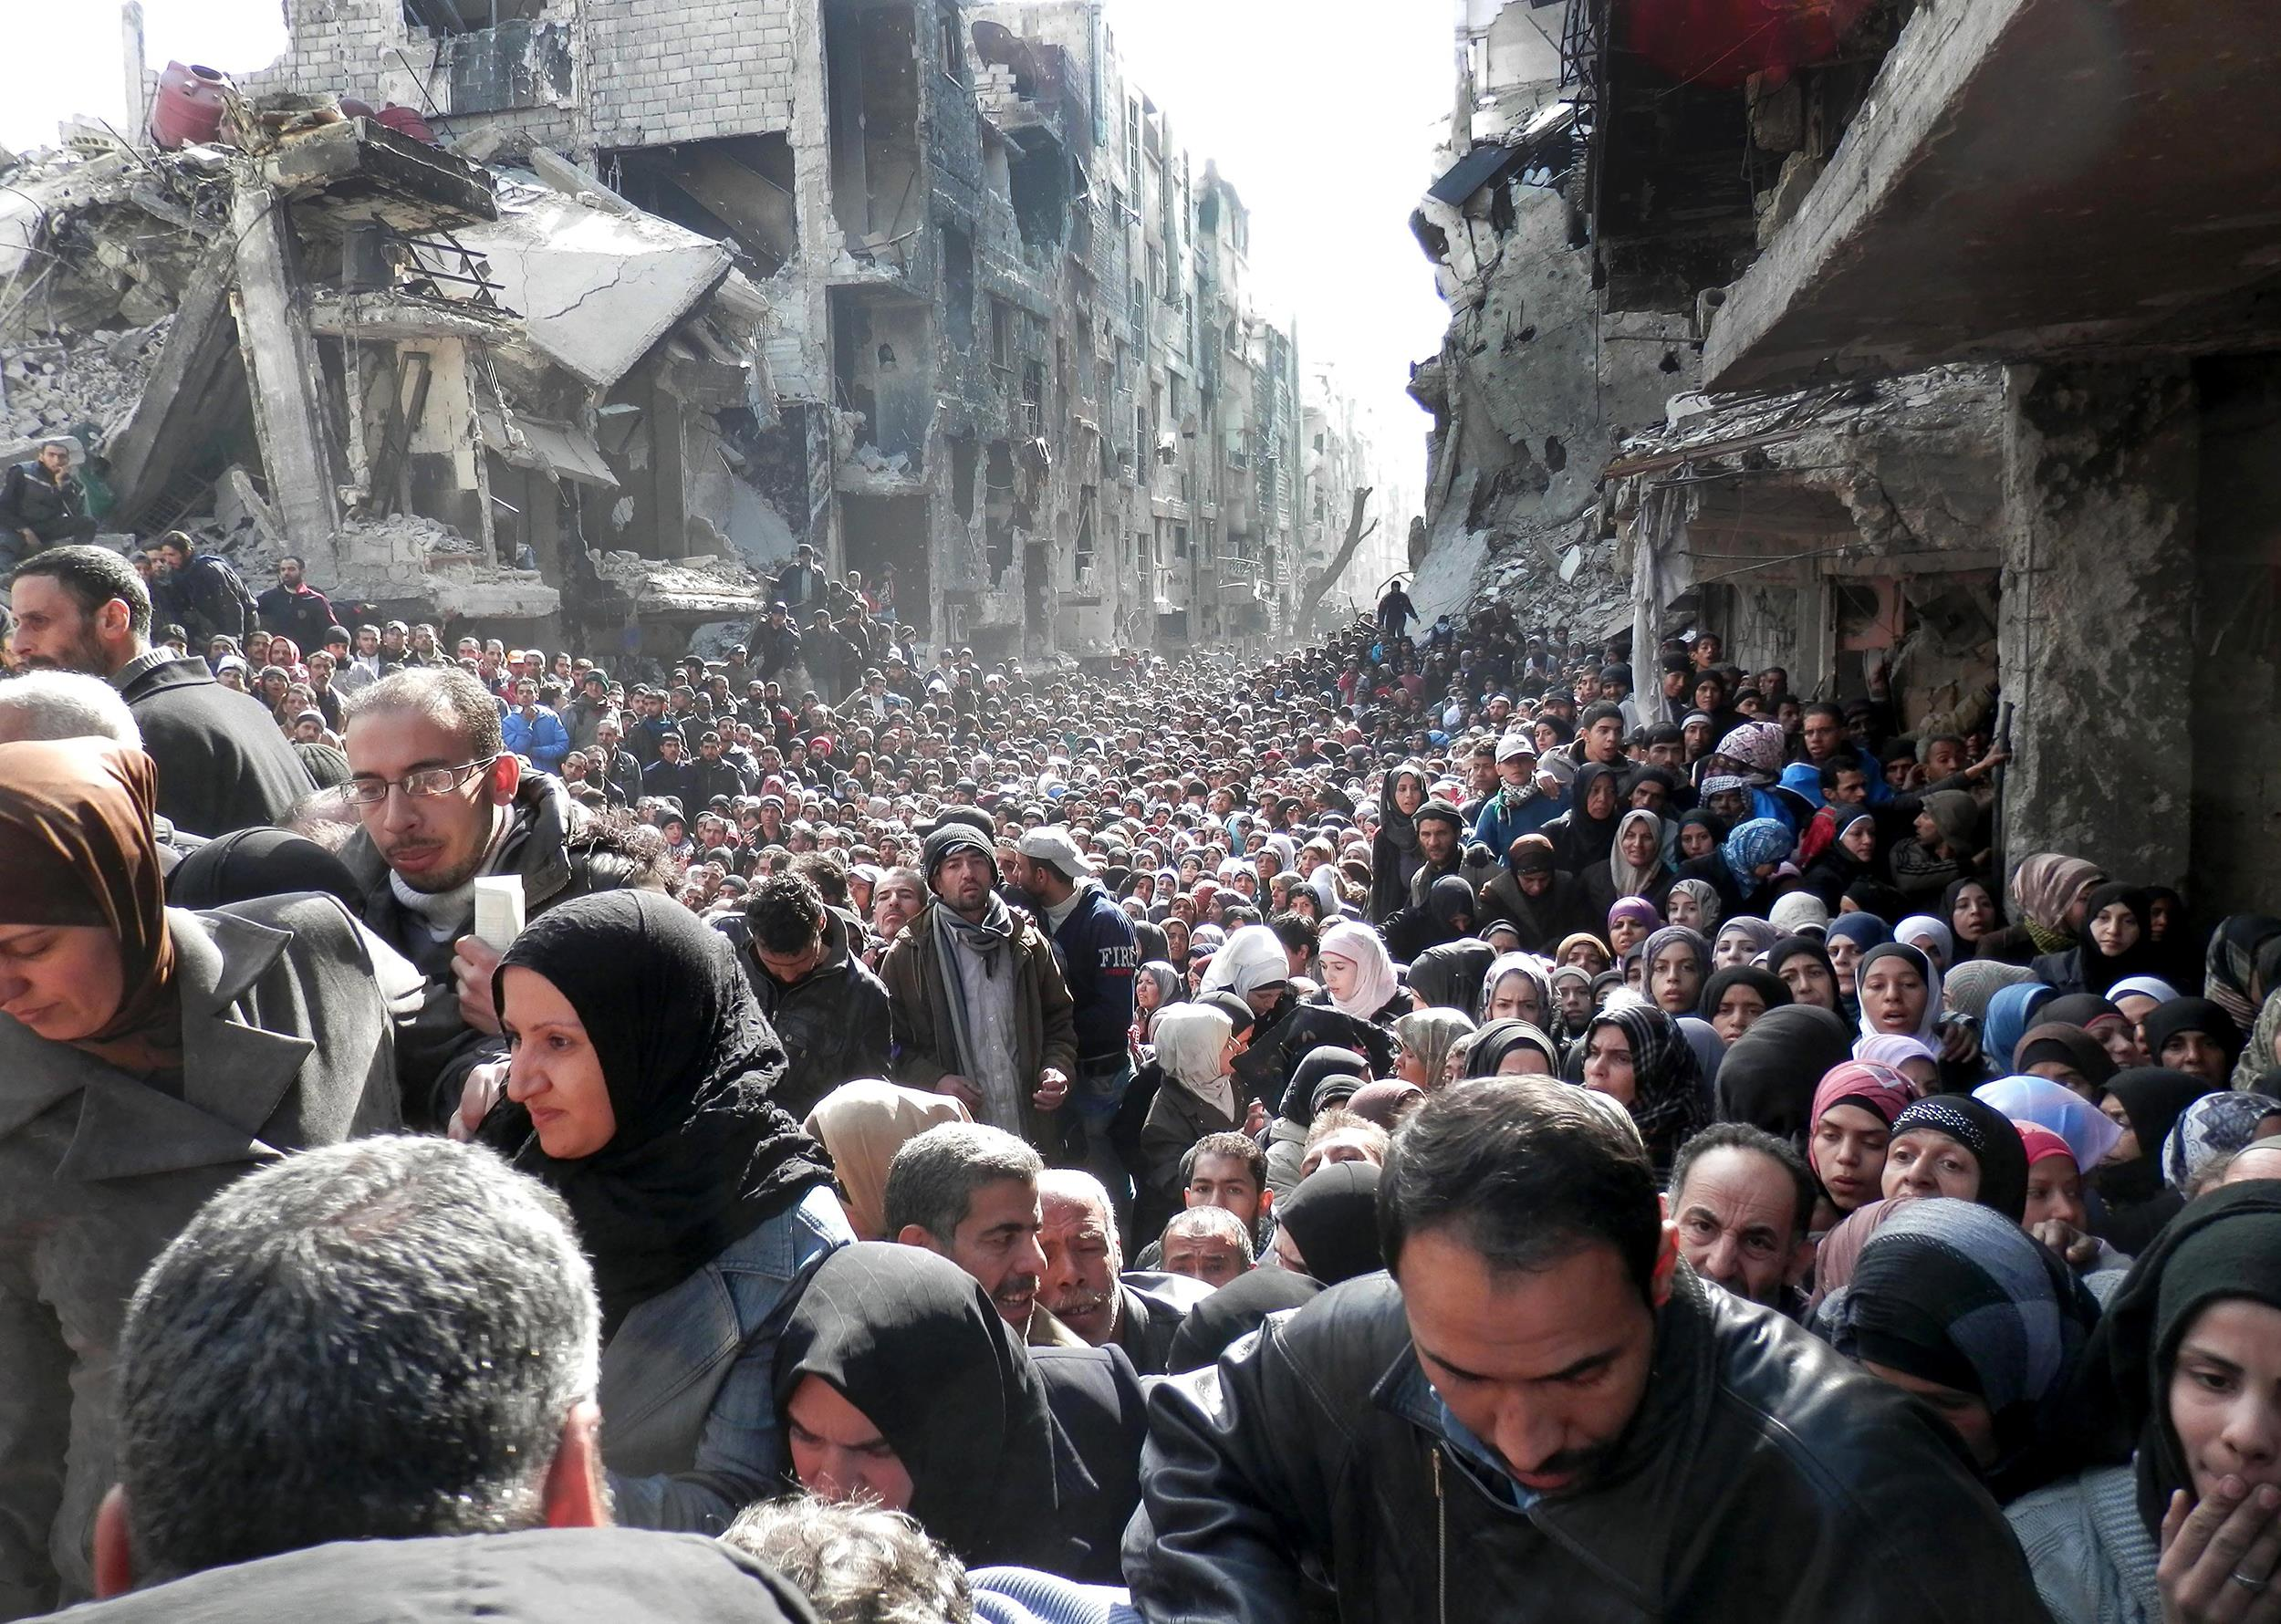 Image: Residents of the besieged Palestinian camp of Yarmouk queuing to receive food supplies in Damascus.